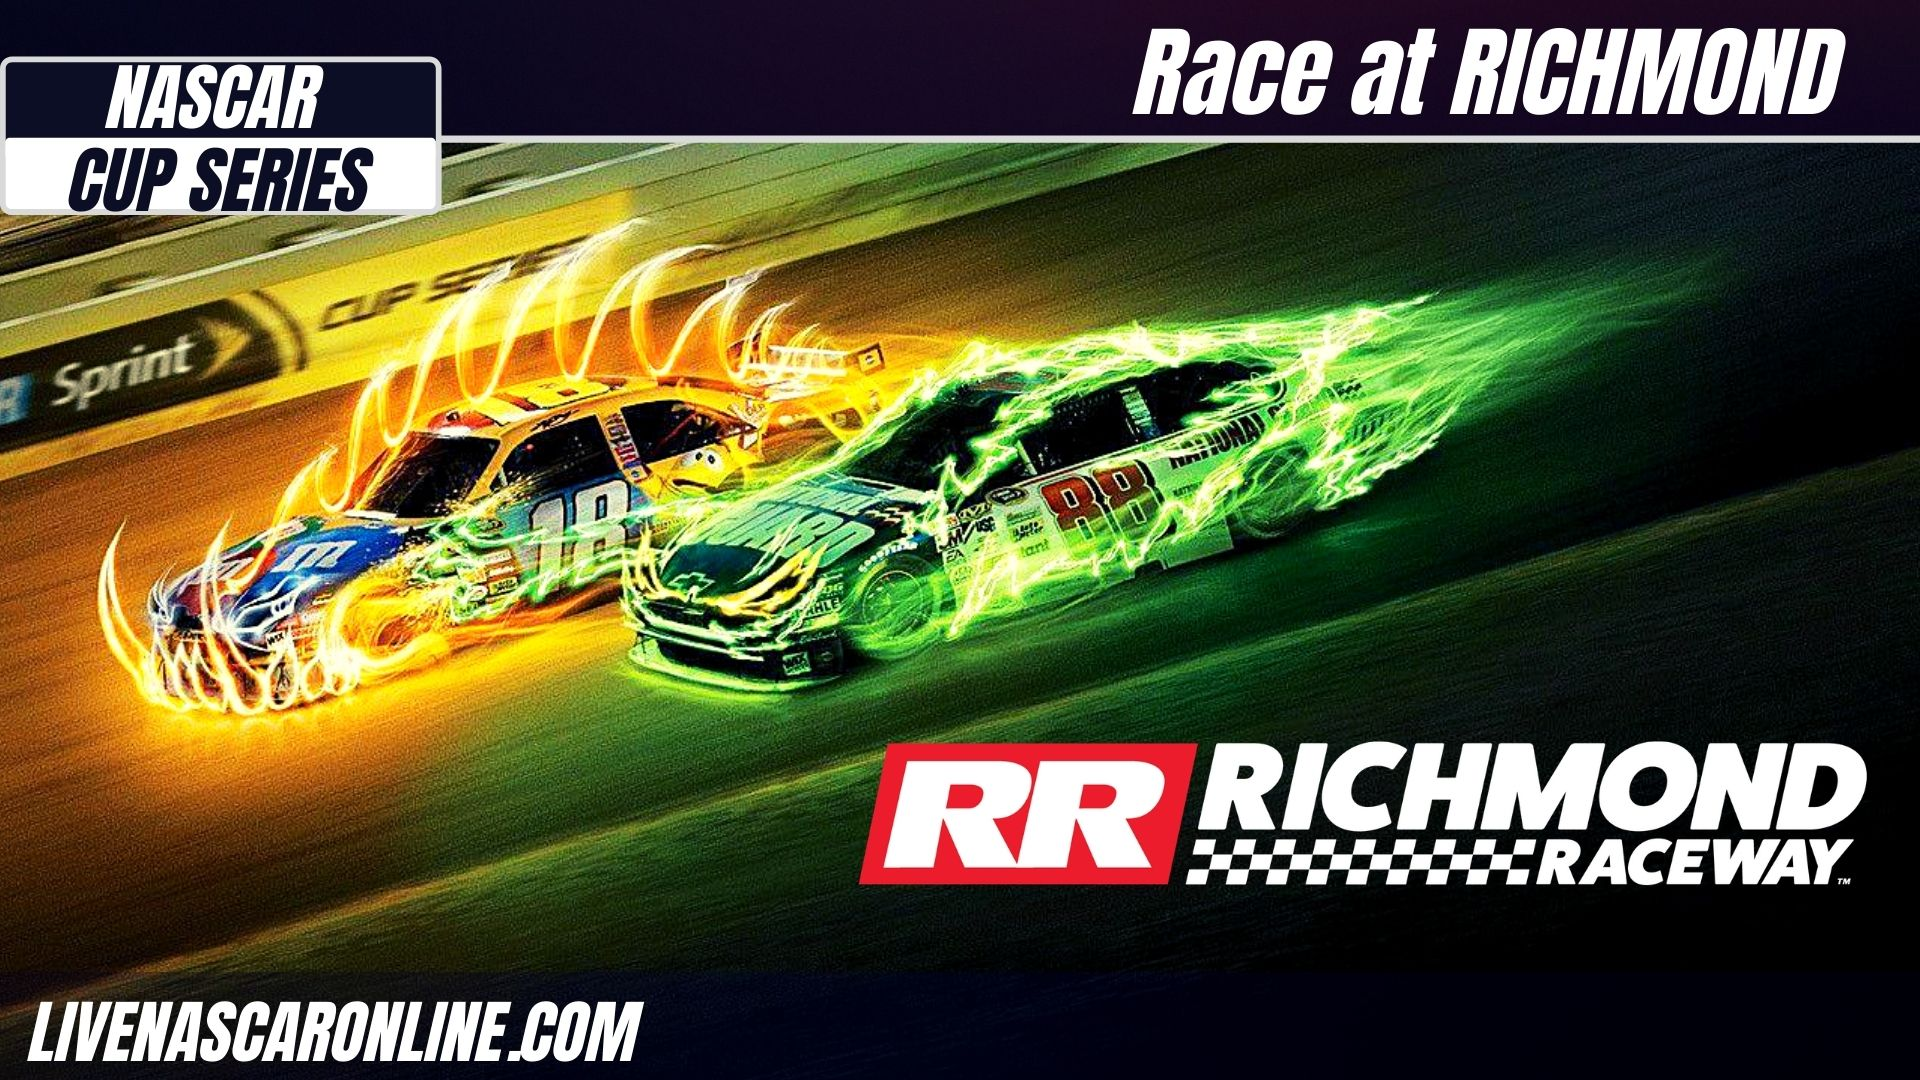 Toyota  Owners 400 at Richmond Live Stream 2021